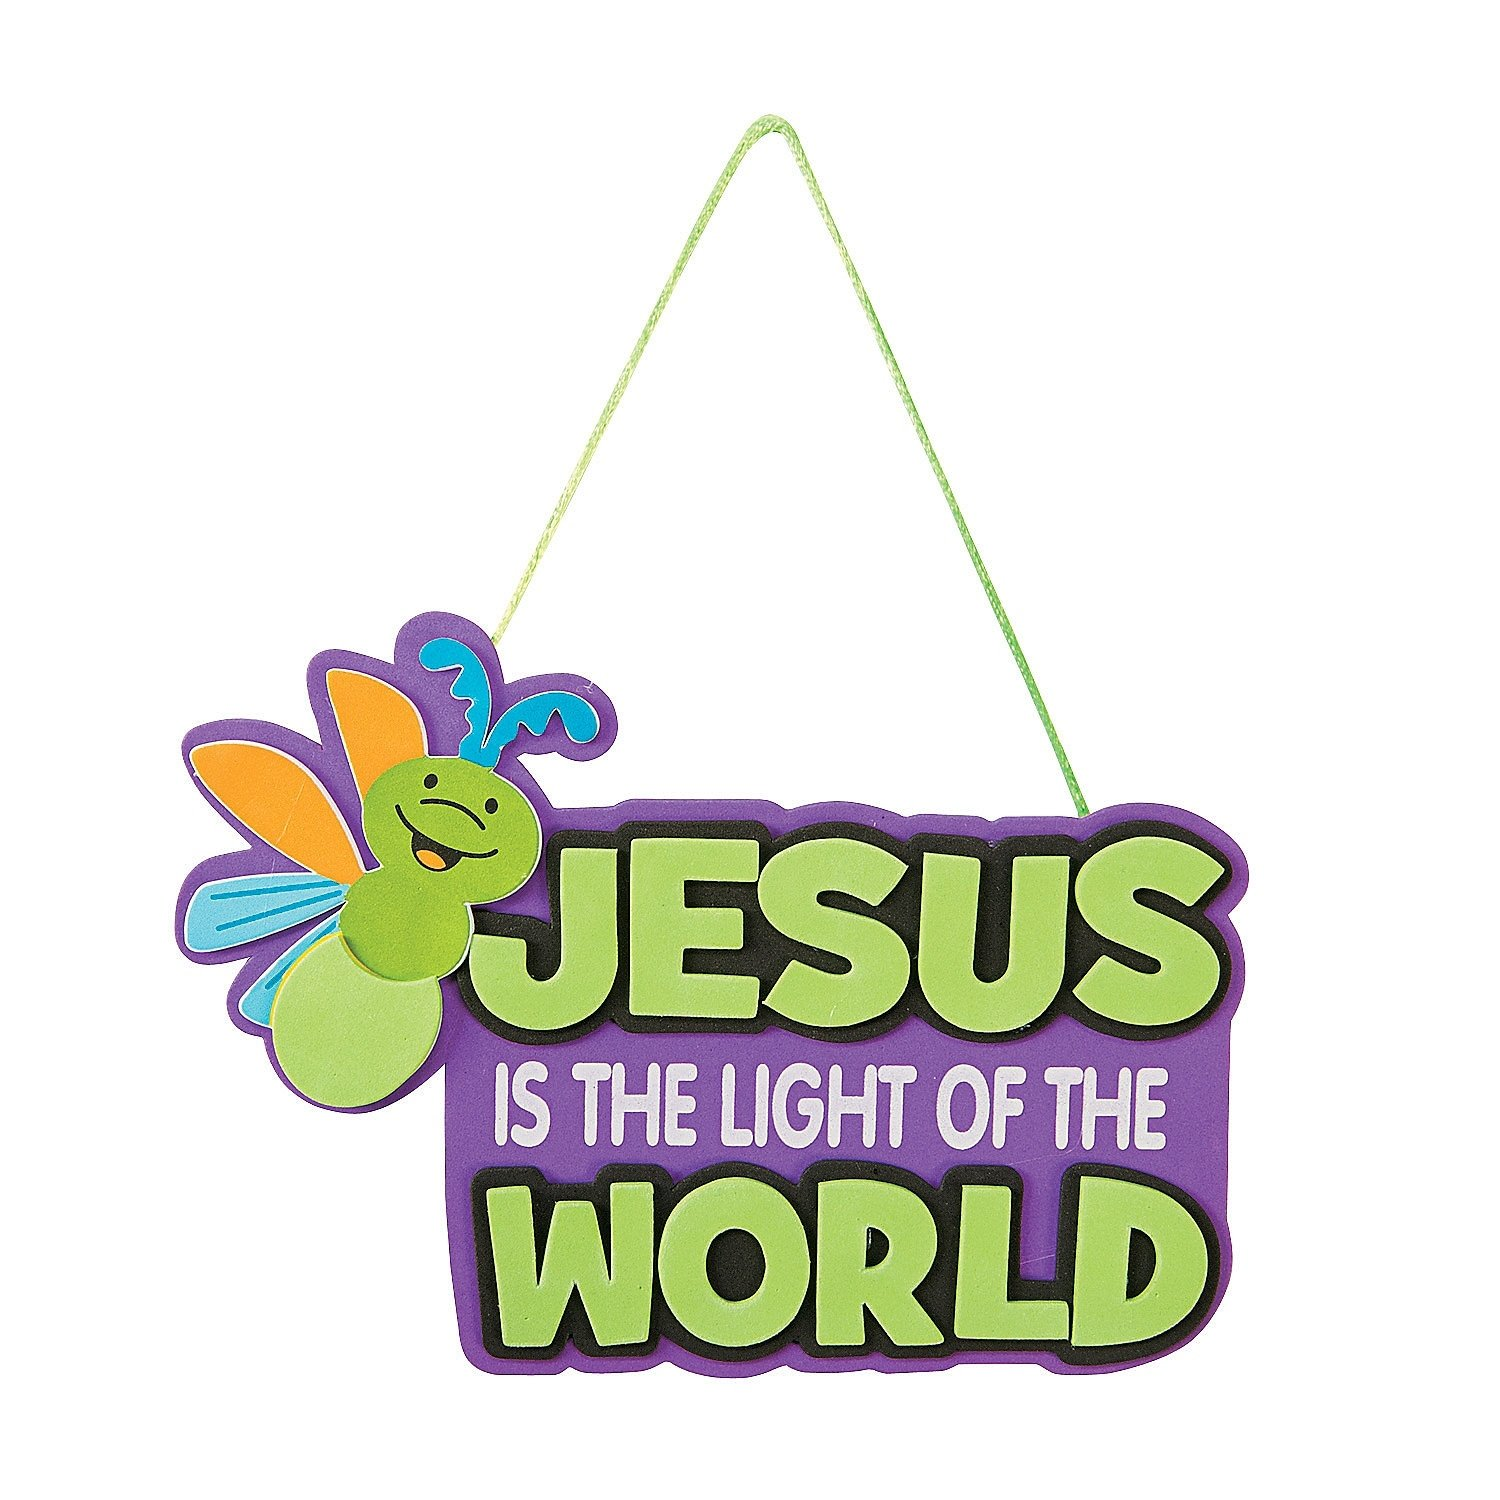 10 Fabulous Vacation Bible School Themes And Ideas jesus glow in the dark sign craft kit craft kits cave quest and 2020